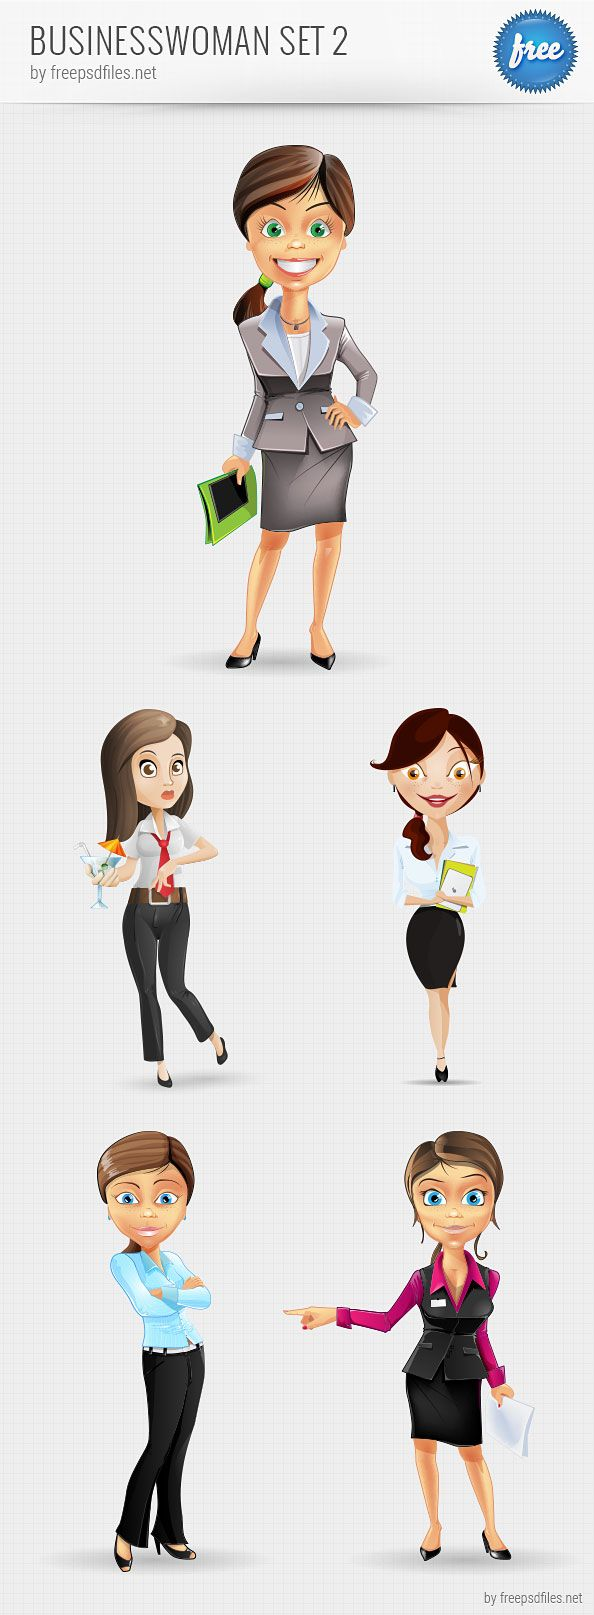 Businesswoman Vector Character Set 2 Businesswoman vector character set released today for free download. We've designed a set of 5 female characters that appear to really know how to do business. Use any of these characters for your next business projects. We assure you that once you put these characters to your projects, they will look much friendlier. Do not hesitate anymore and head straight to the download section. Grab the PSD file for free!